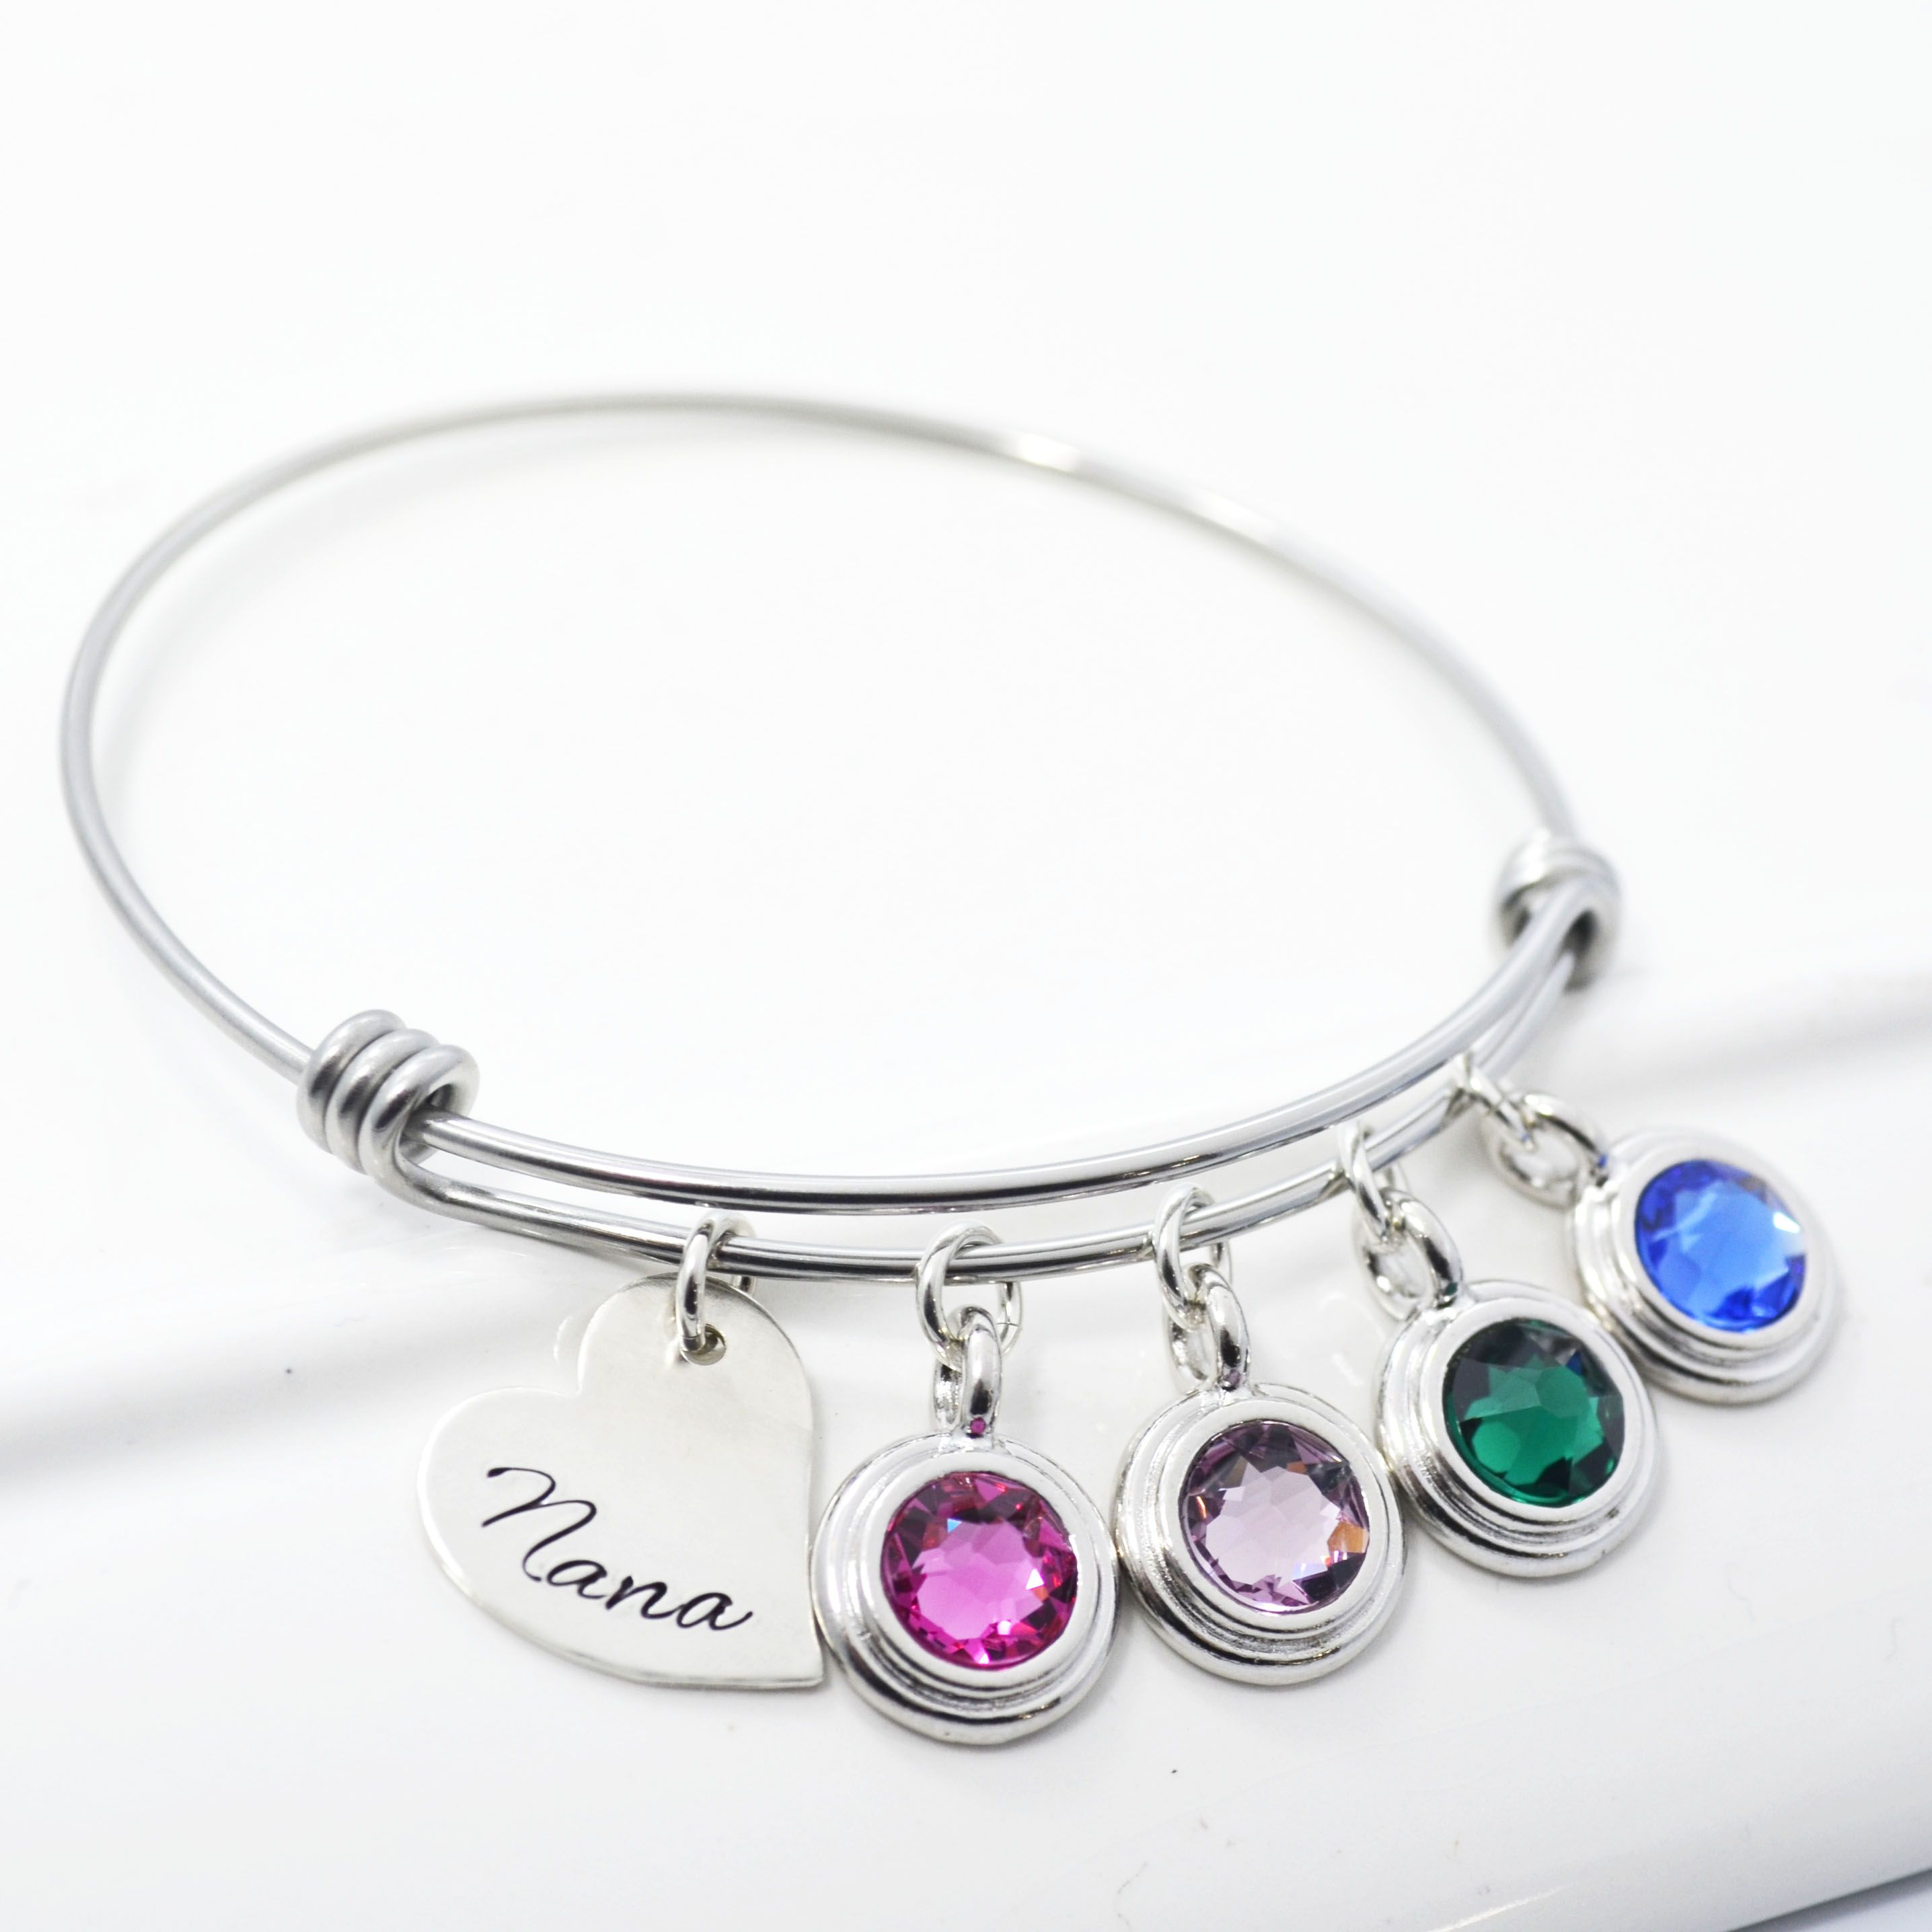 catholic bangles bracelet colorful charm the bracelets grace company